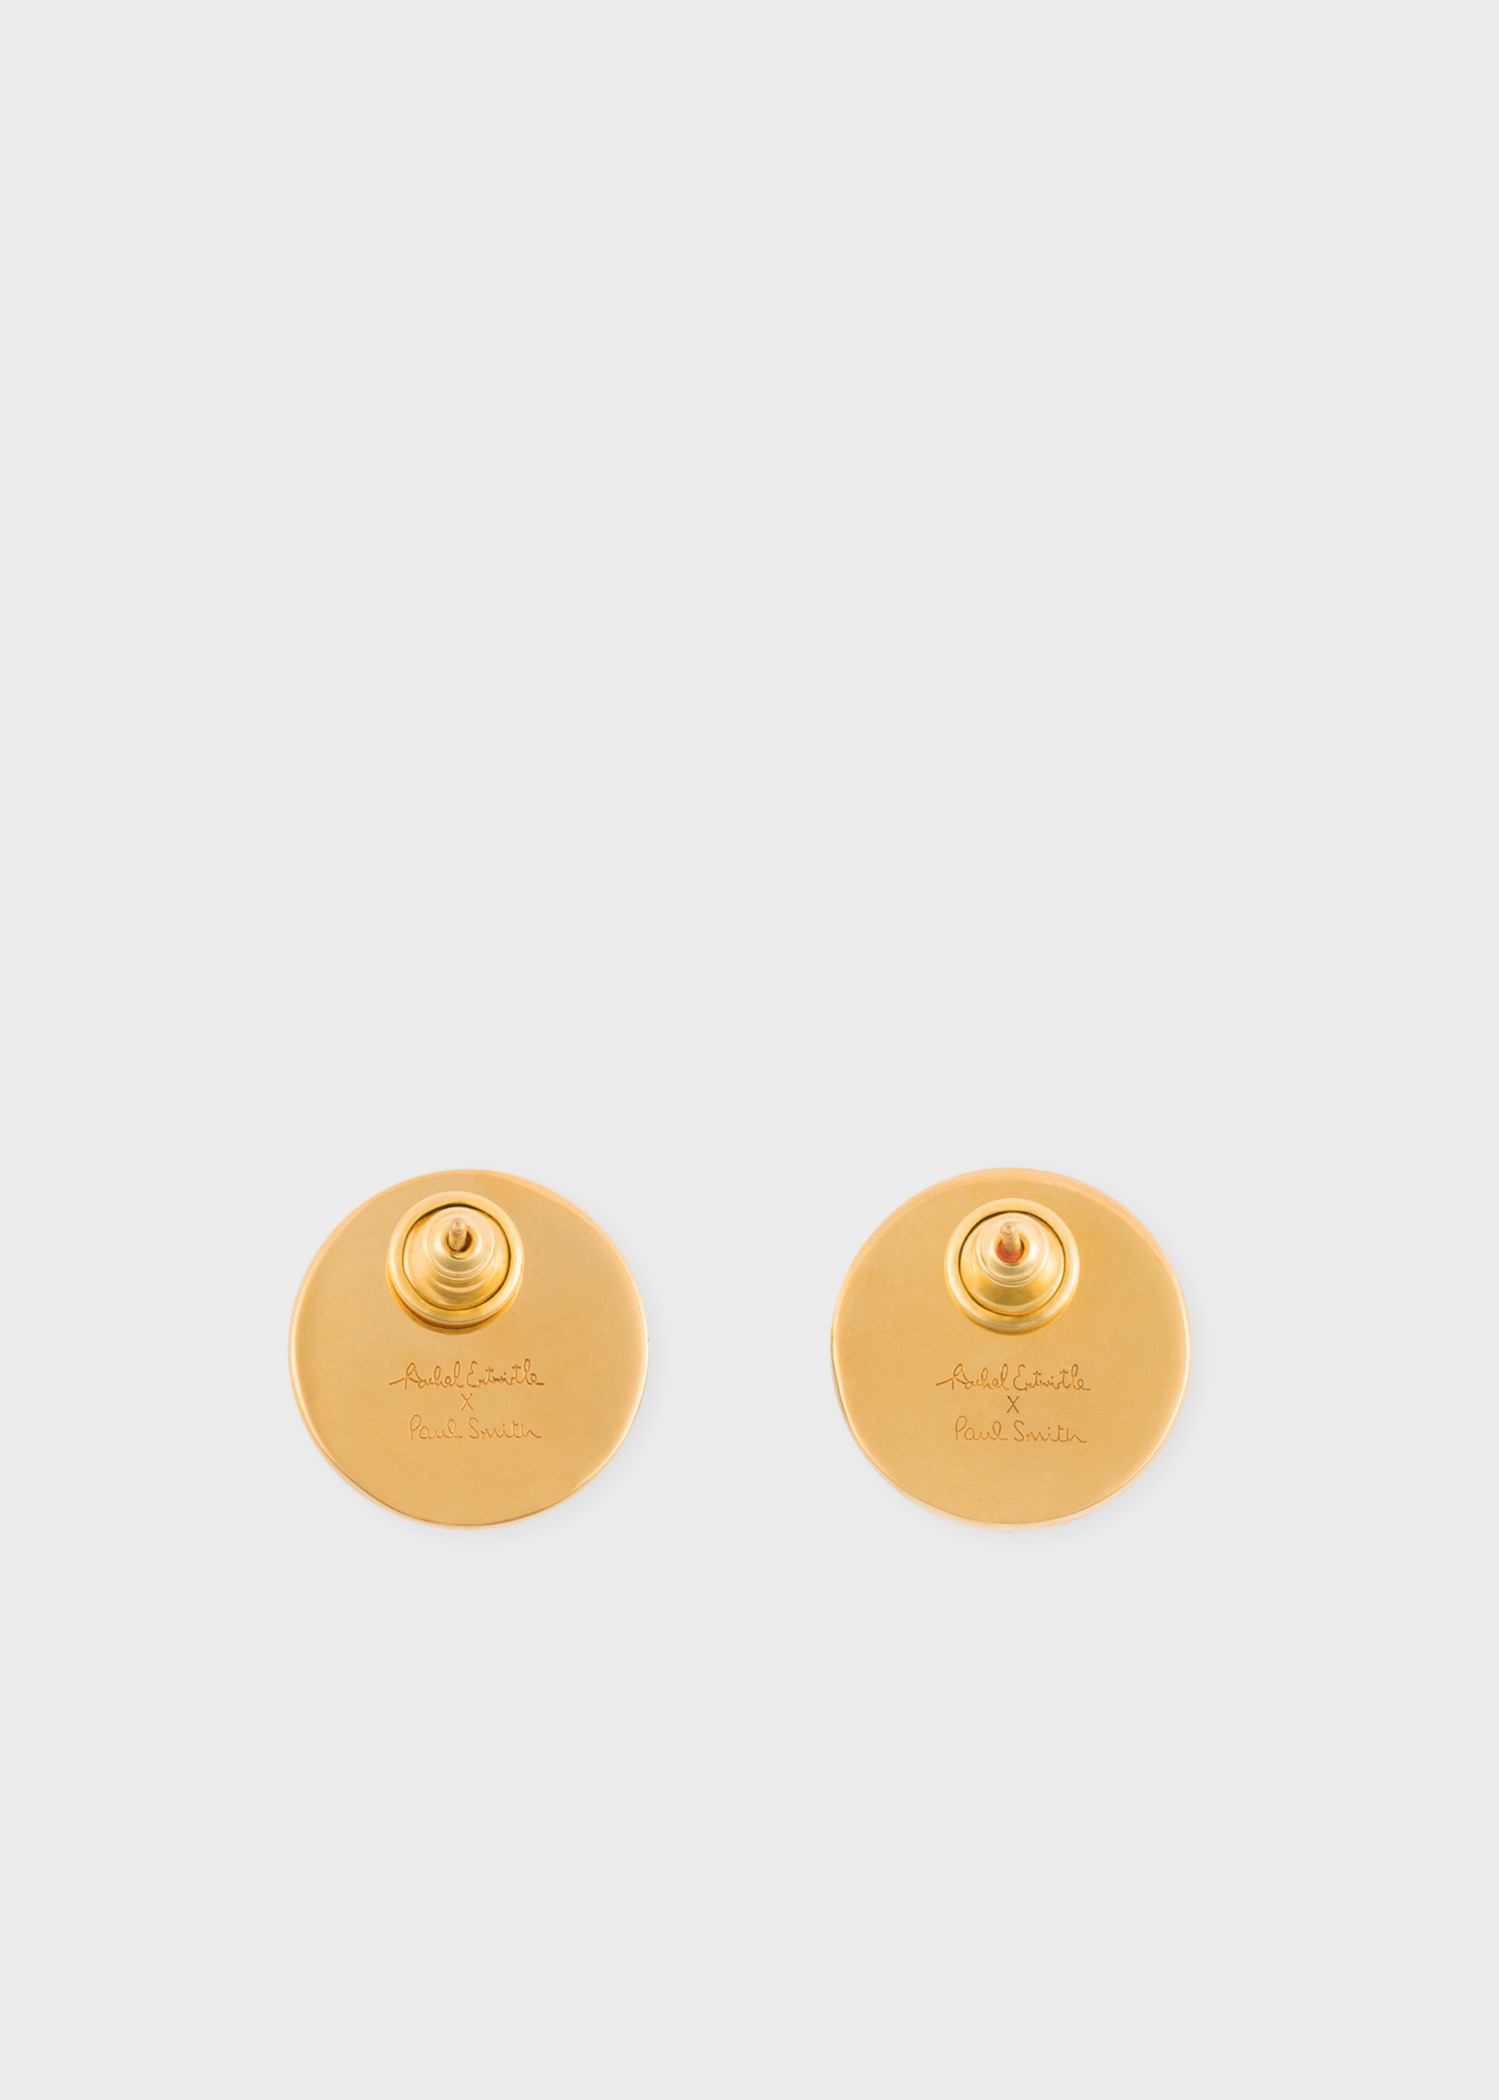 Paul Smith X Rachel Entwistle Gold Stud Earrings With Red C Stone